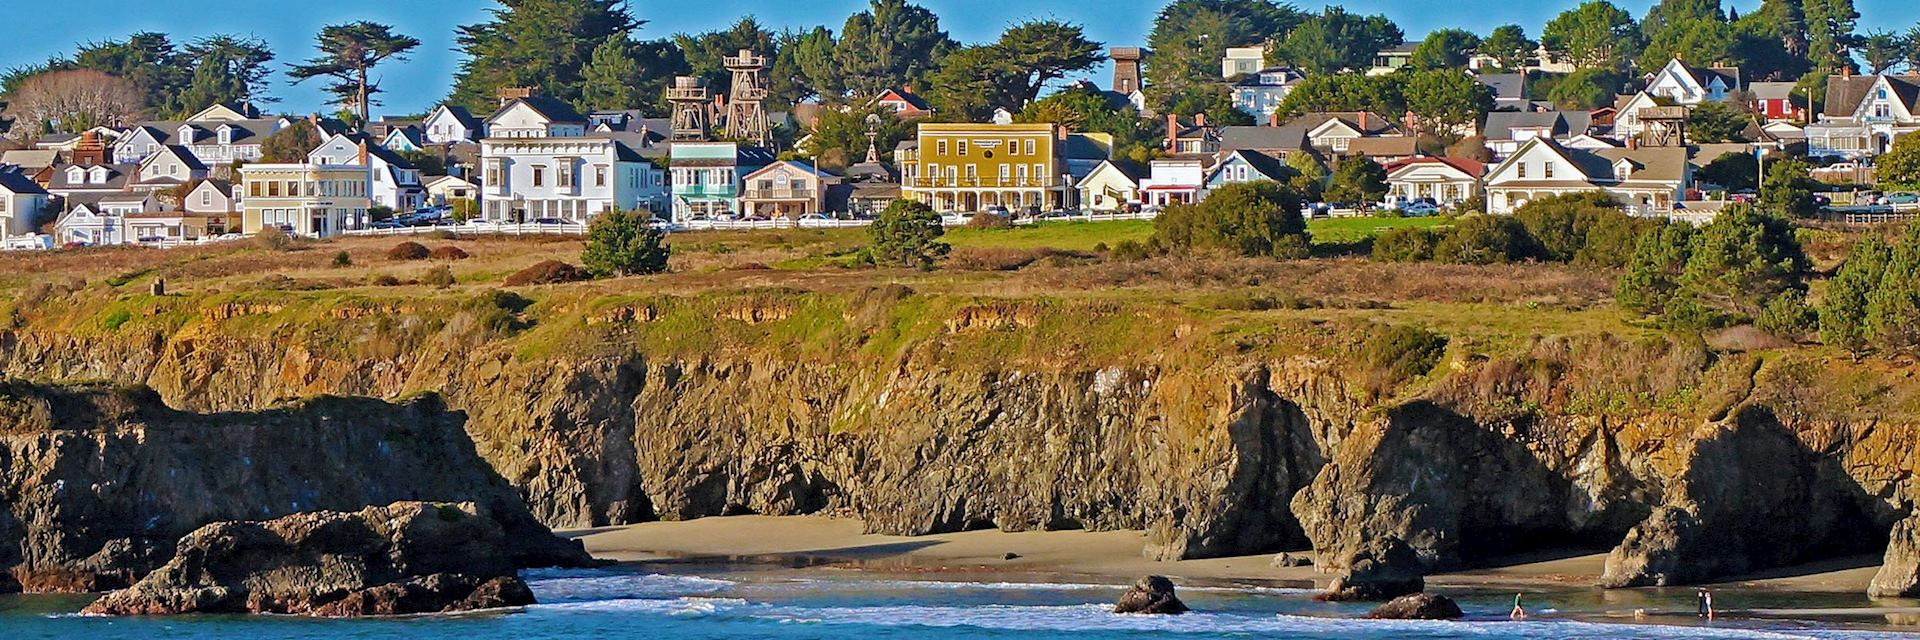 Mendocino in California, the USA